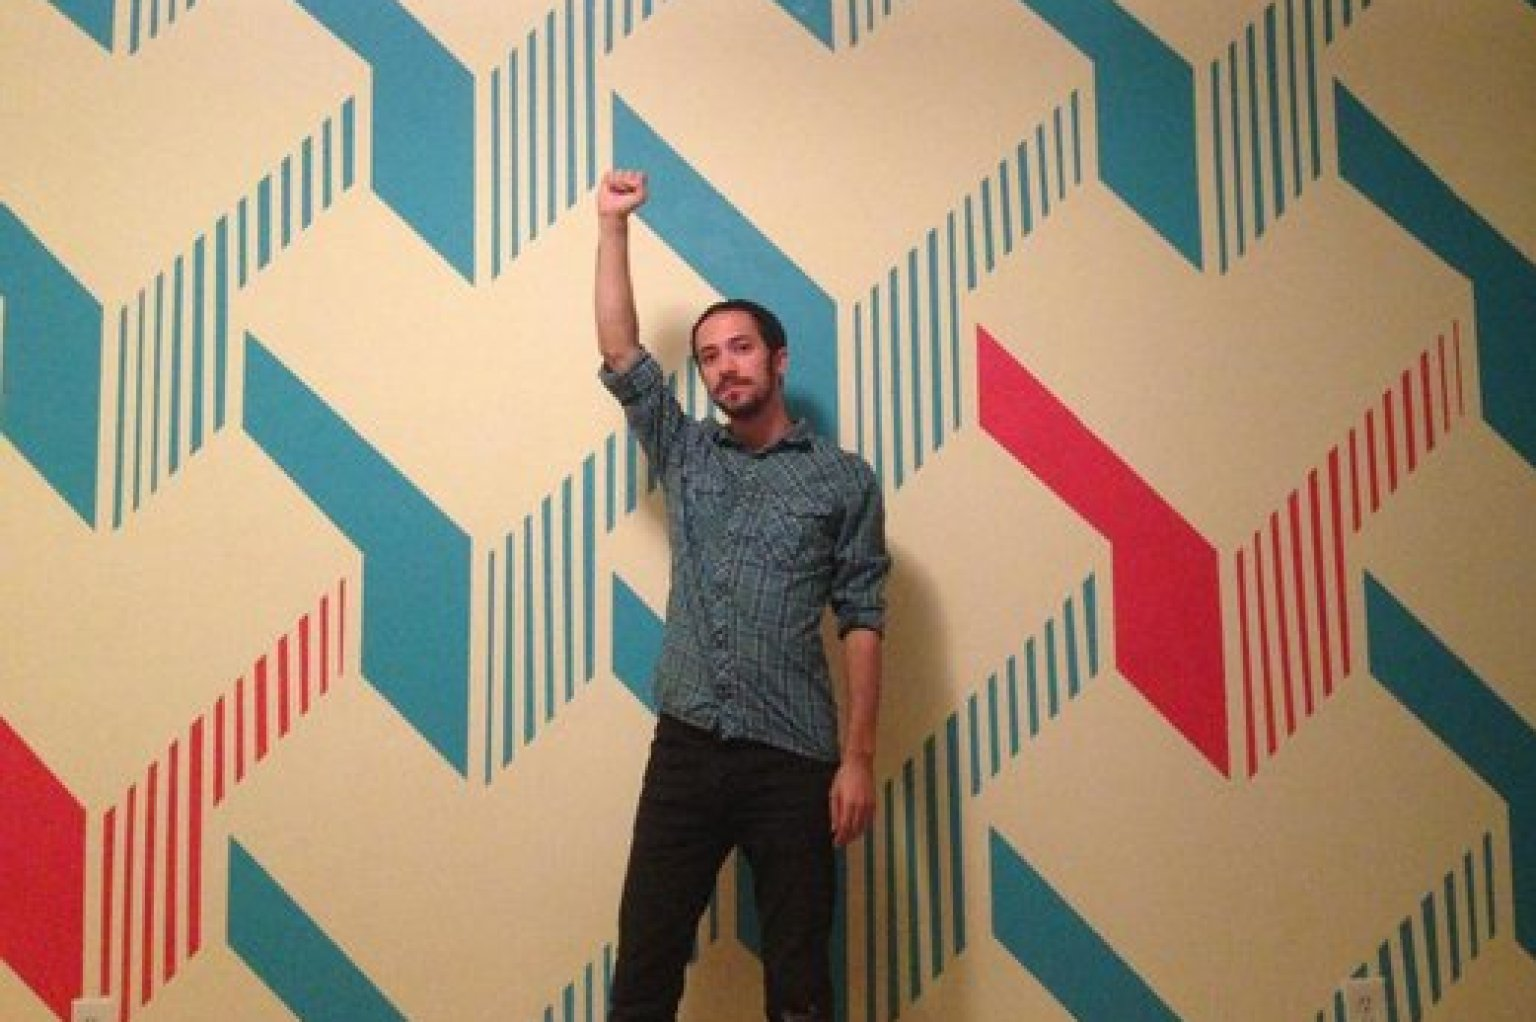 DIY Painted Wall Design Is Way Cooler Than Any Wallpaper Youu0027ll See  (PHOTOS) | HuffPost